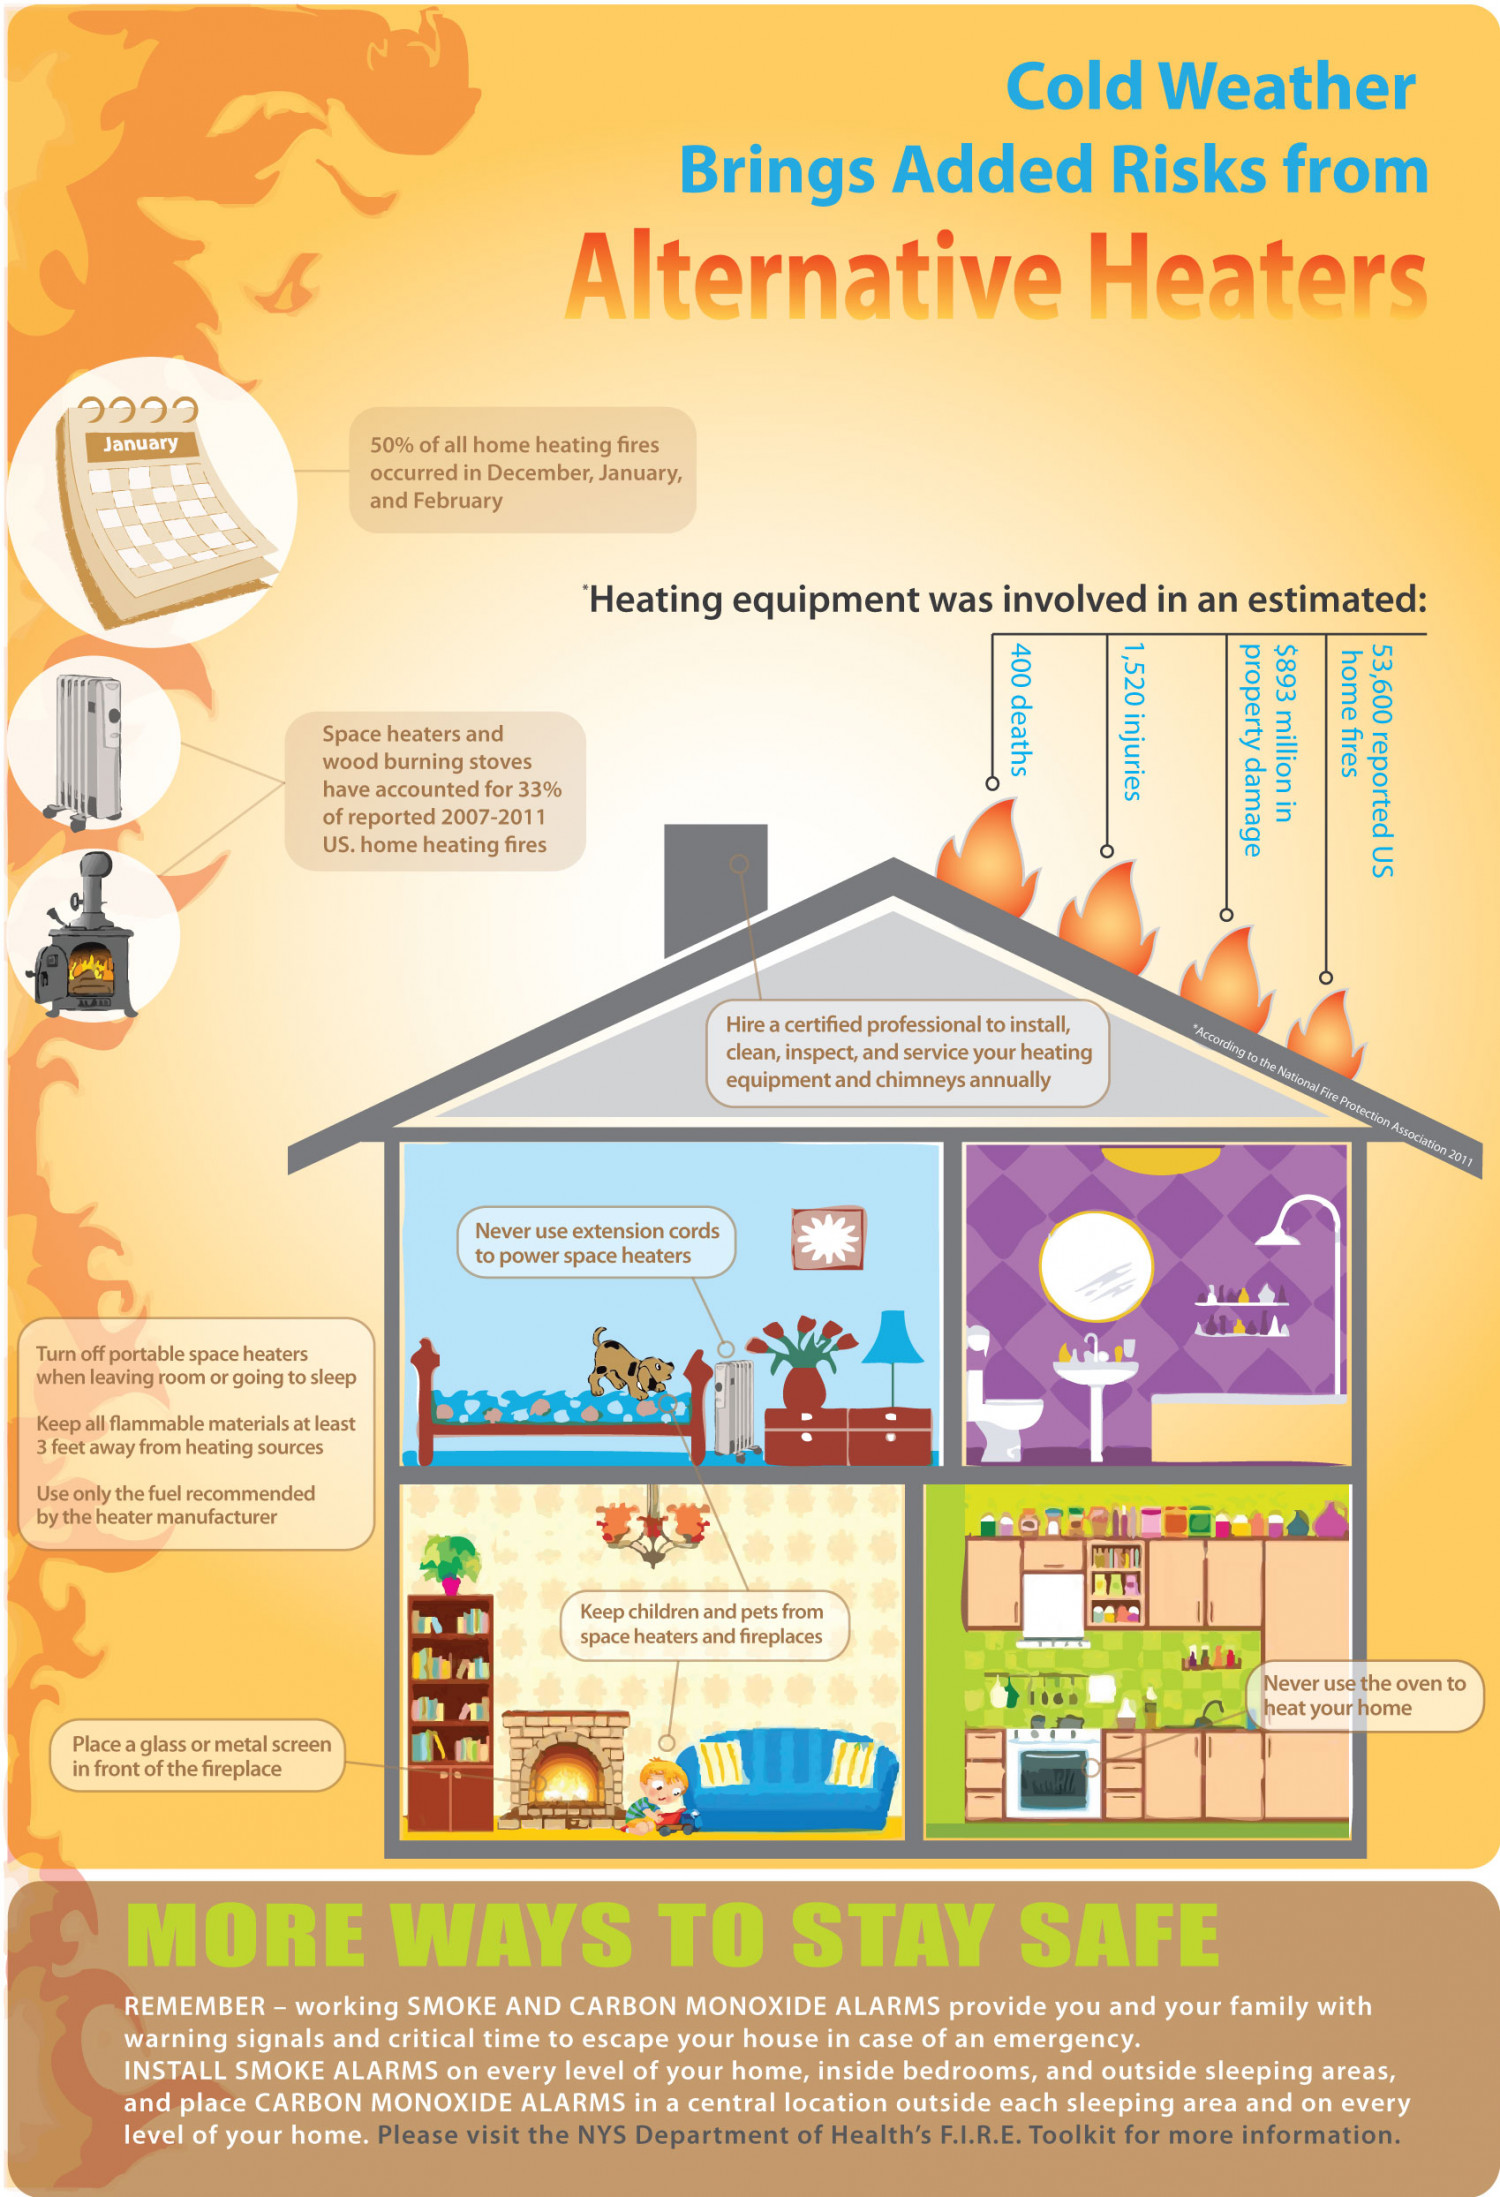 Stay Safe While Heating Your Home During Cold Winter Months Infographic